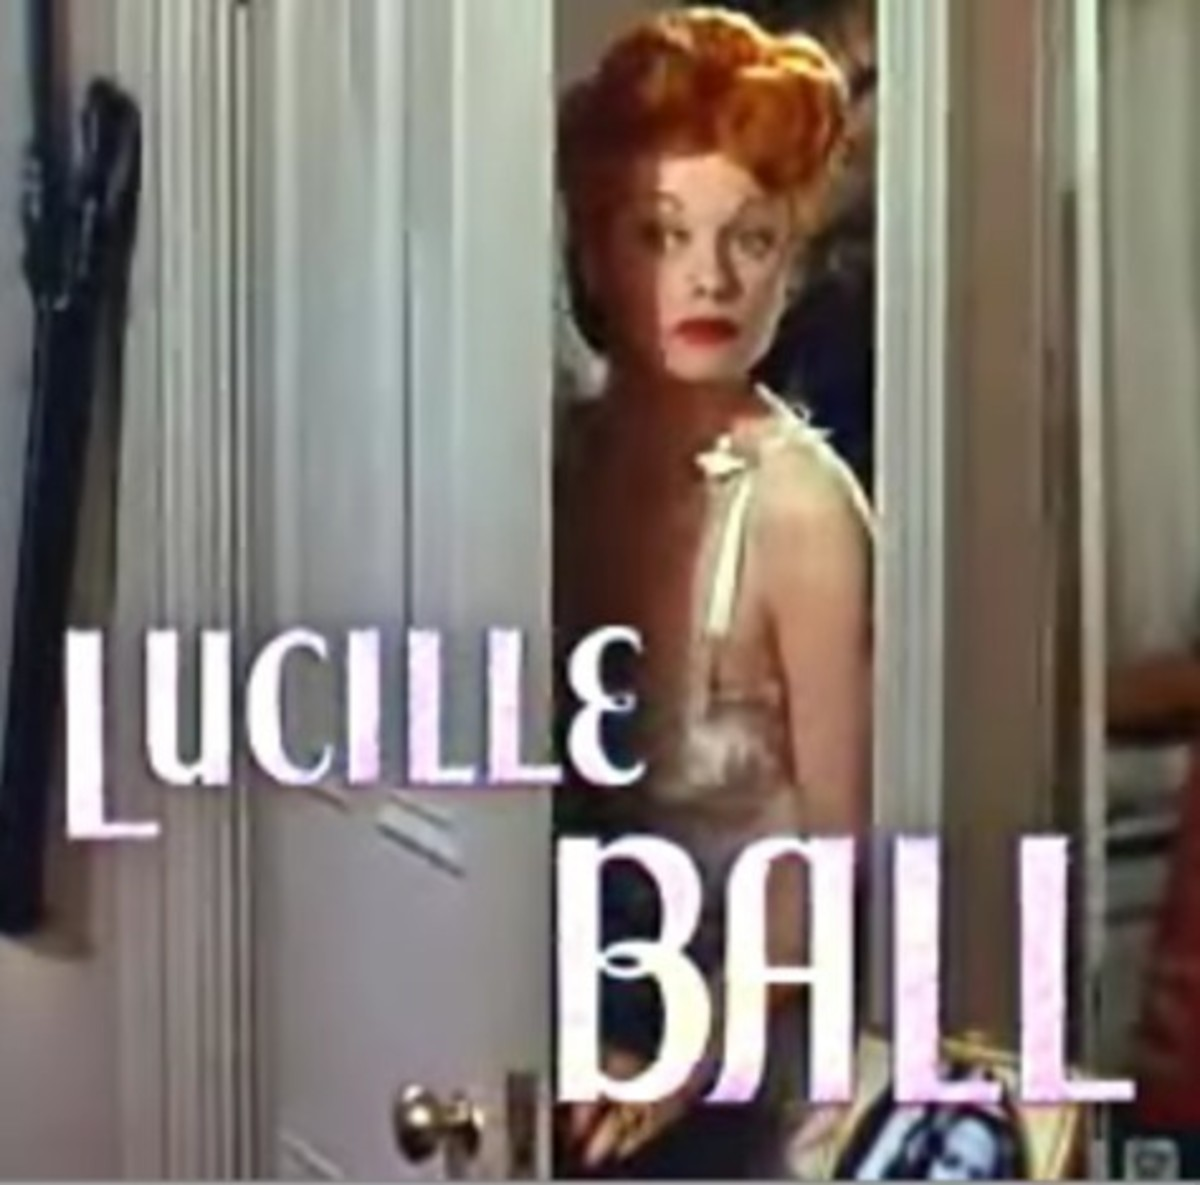 Screen shot of Lucille Ball from the Best Foot Forward movie trailer.